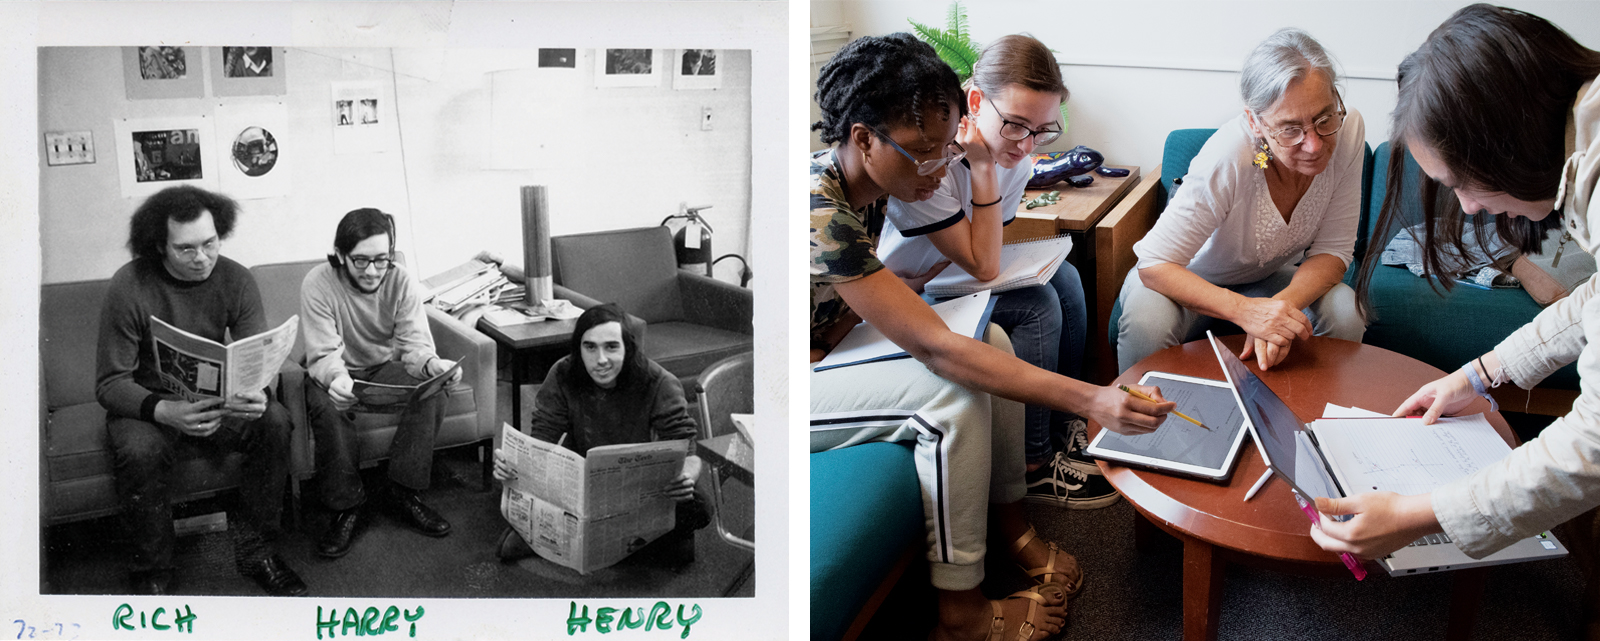 Left: Experimental Study Group students Rich Hilliard, Harry Bochner, and Henry Lieberman work together in 1972. Right: Professor Leigh Royden, center, teaches physics to first-years (from left, Alexandra Nwigwe, Veronica Perdomo, and Maya Redden) in 2019. Photos: Courtesy of Experimental Study Group